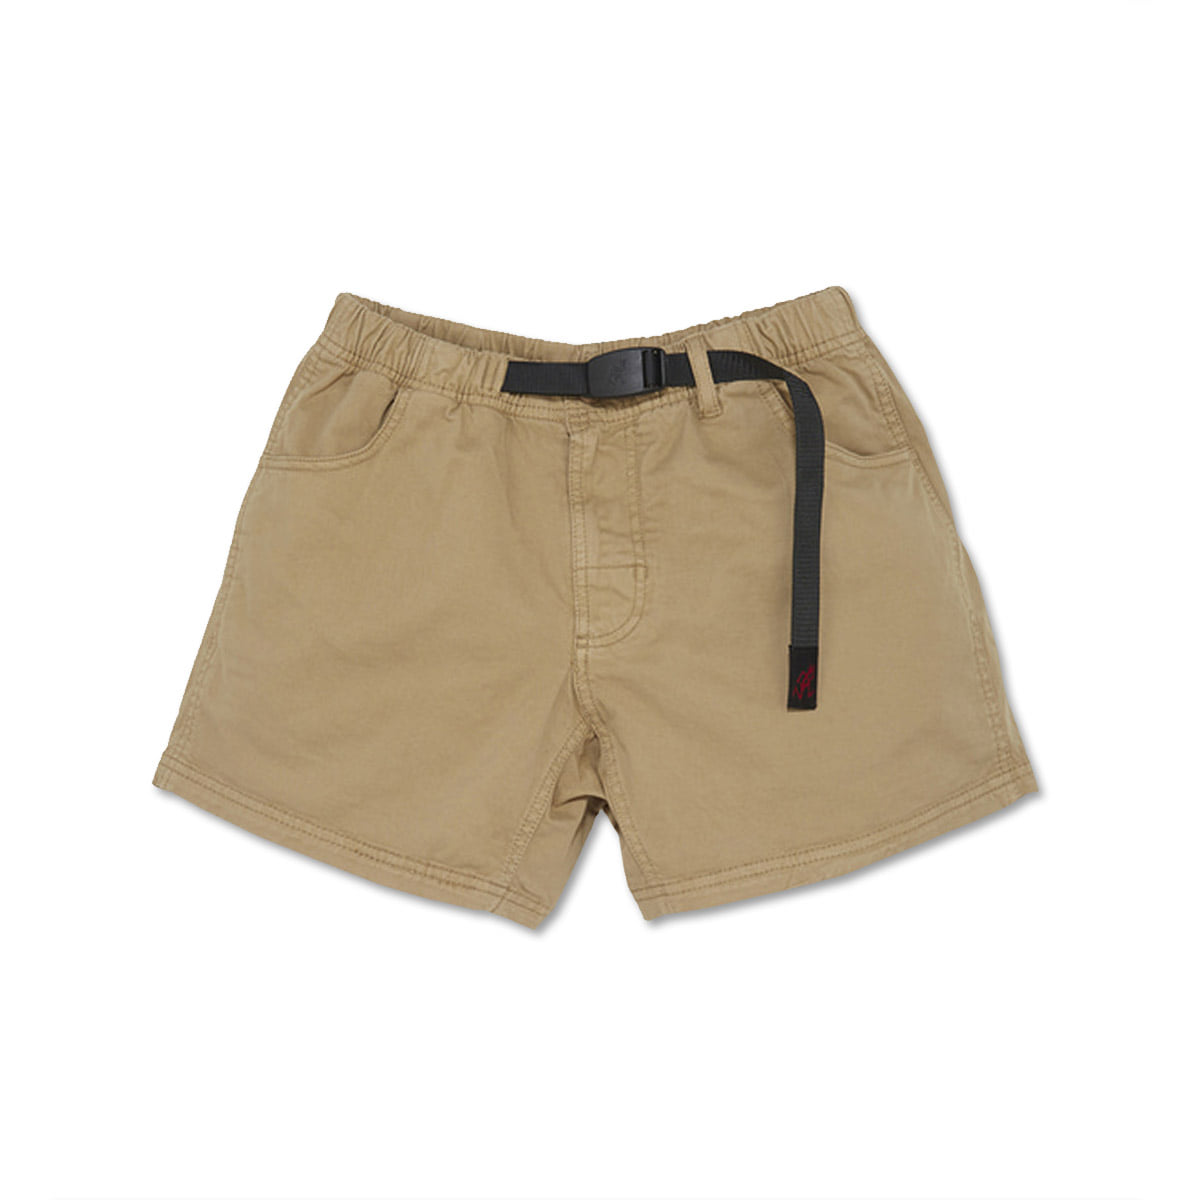 [GRAMCCI] VERY SHORTS 'CHINO'